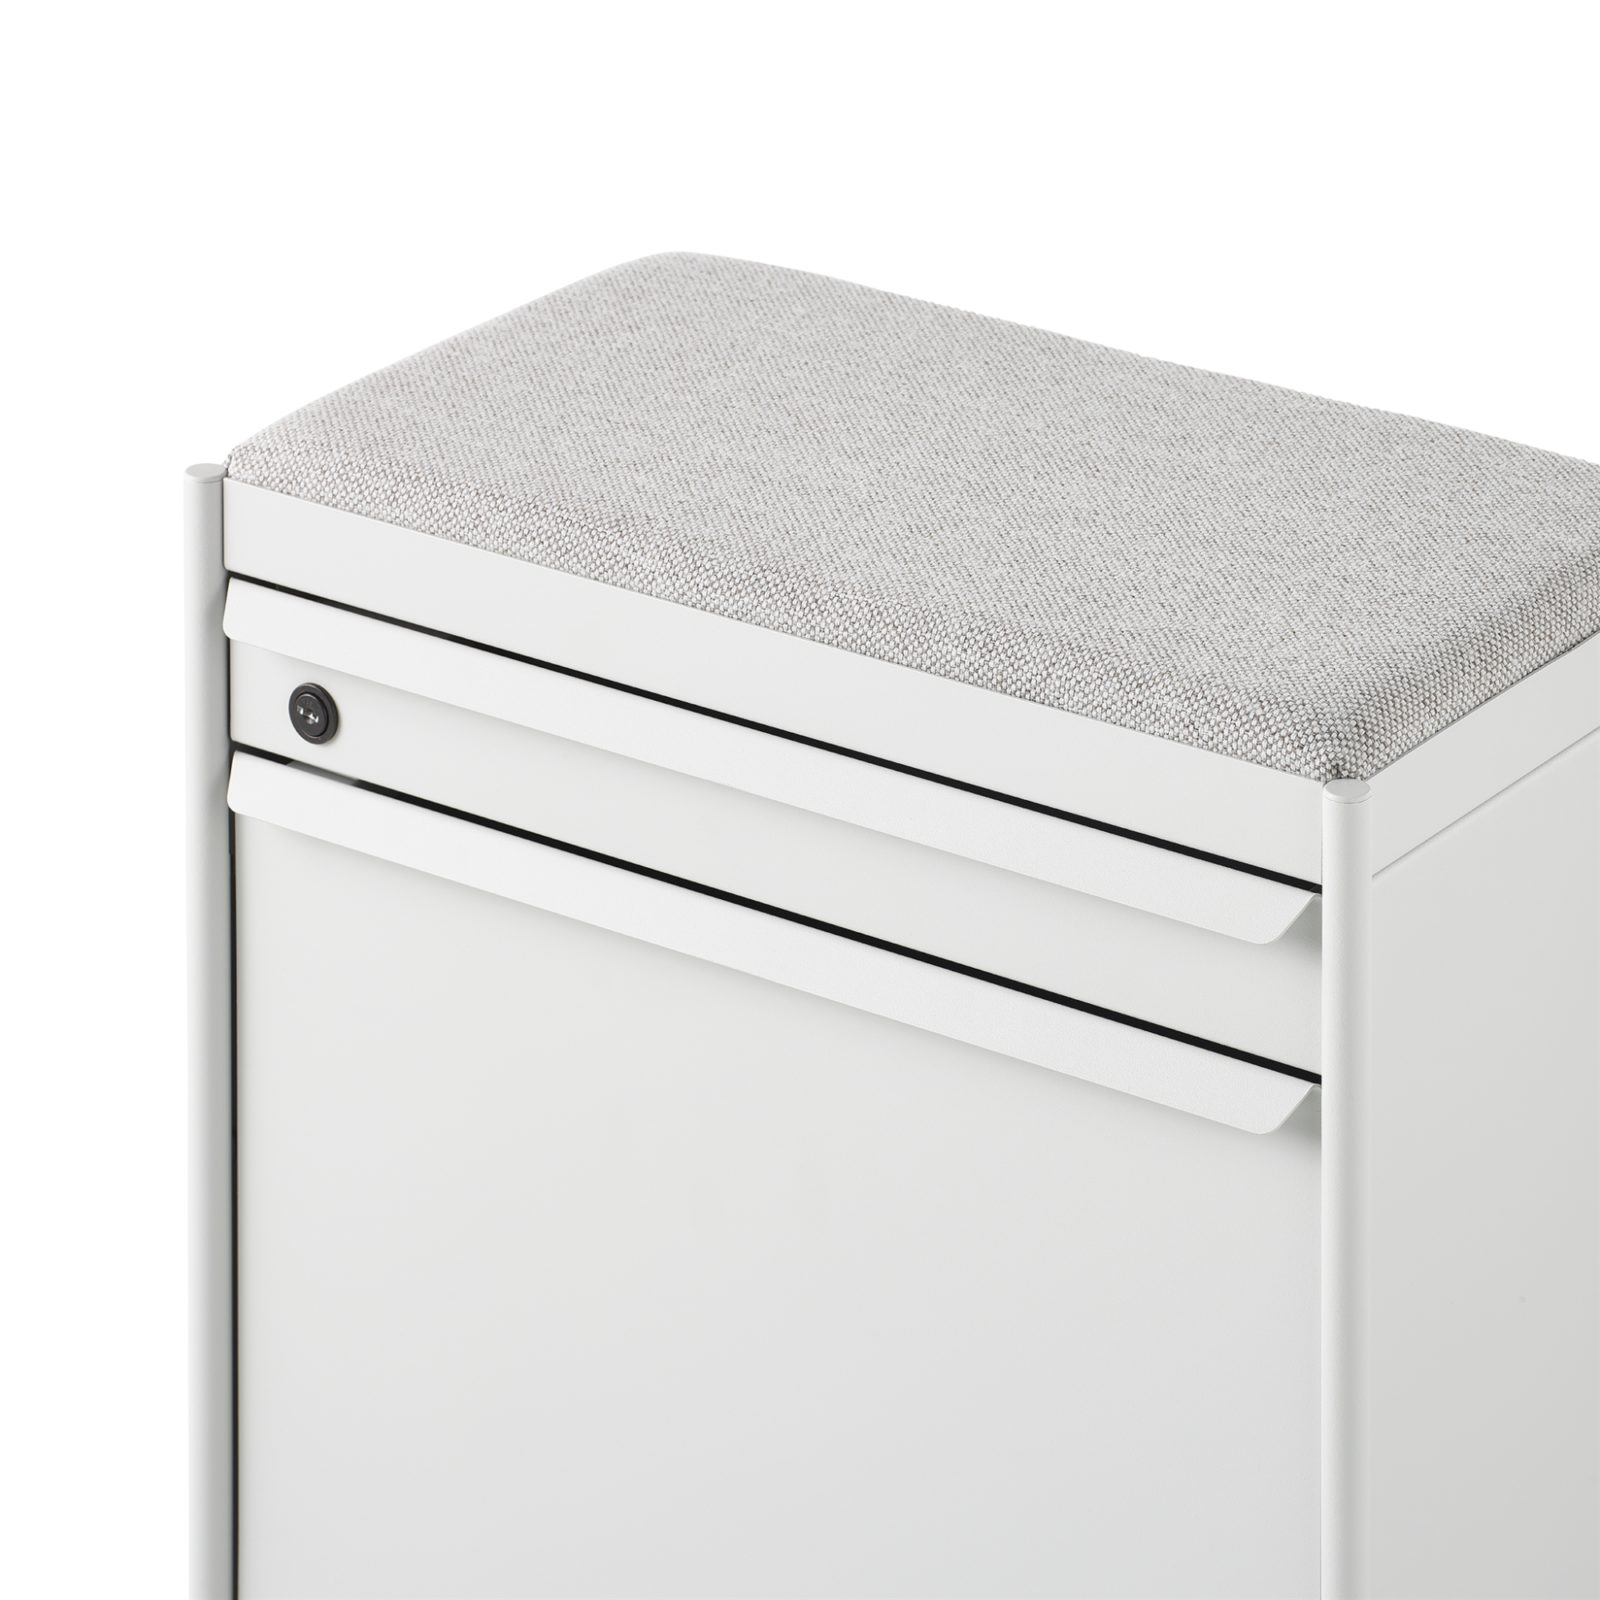 A grey fabric cushion top on a white OE1 Storage Trolley with a lockable top drawer and bottom tip-out bin.